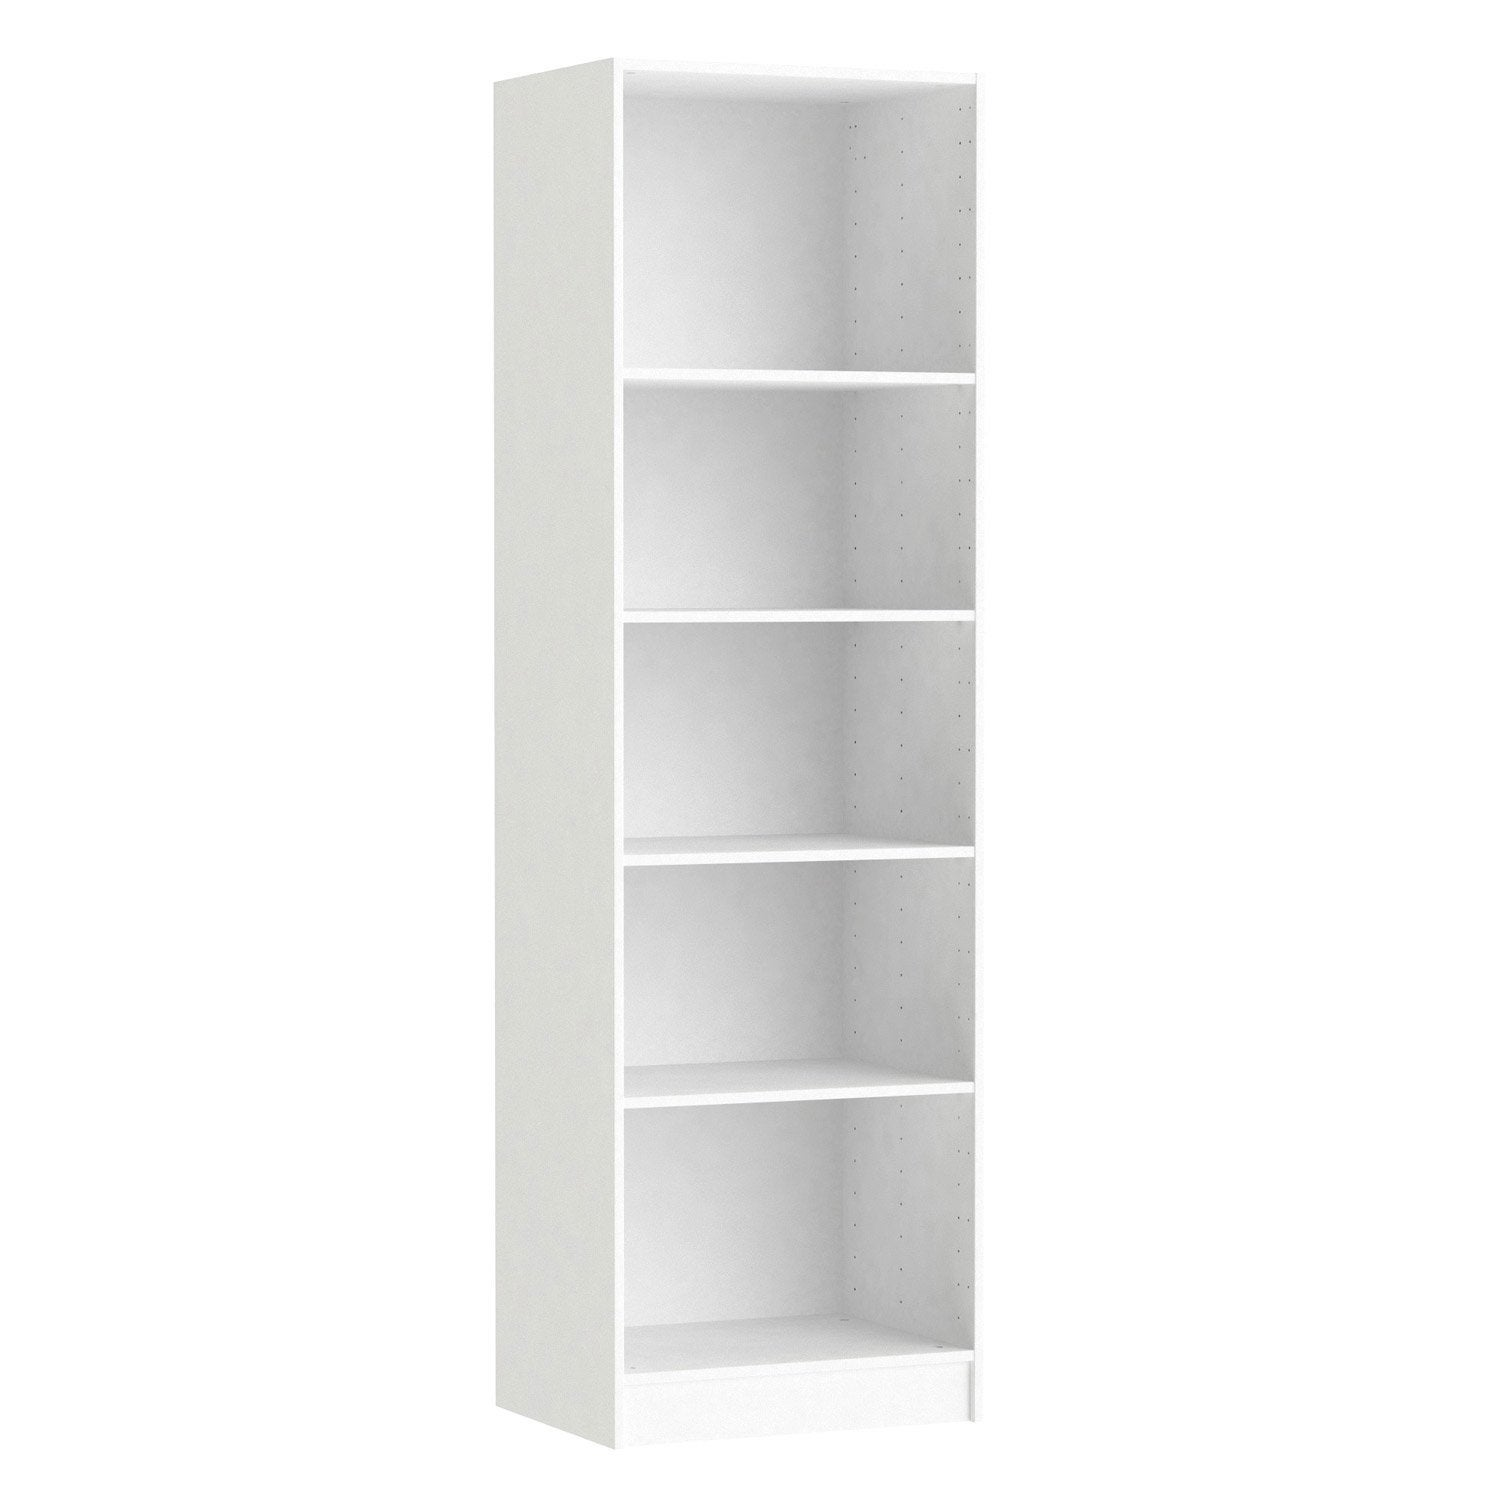 Caisson spaceo home 200 x 60 x 45 cm blanc leroy merlin for Meuble bureau leroy merlin